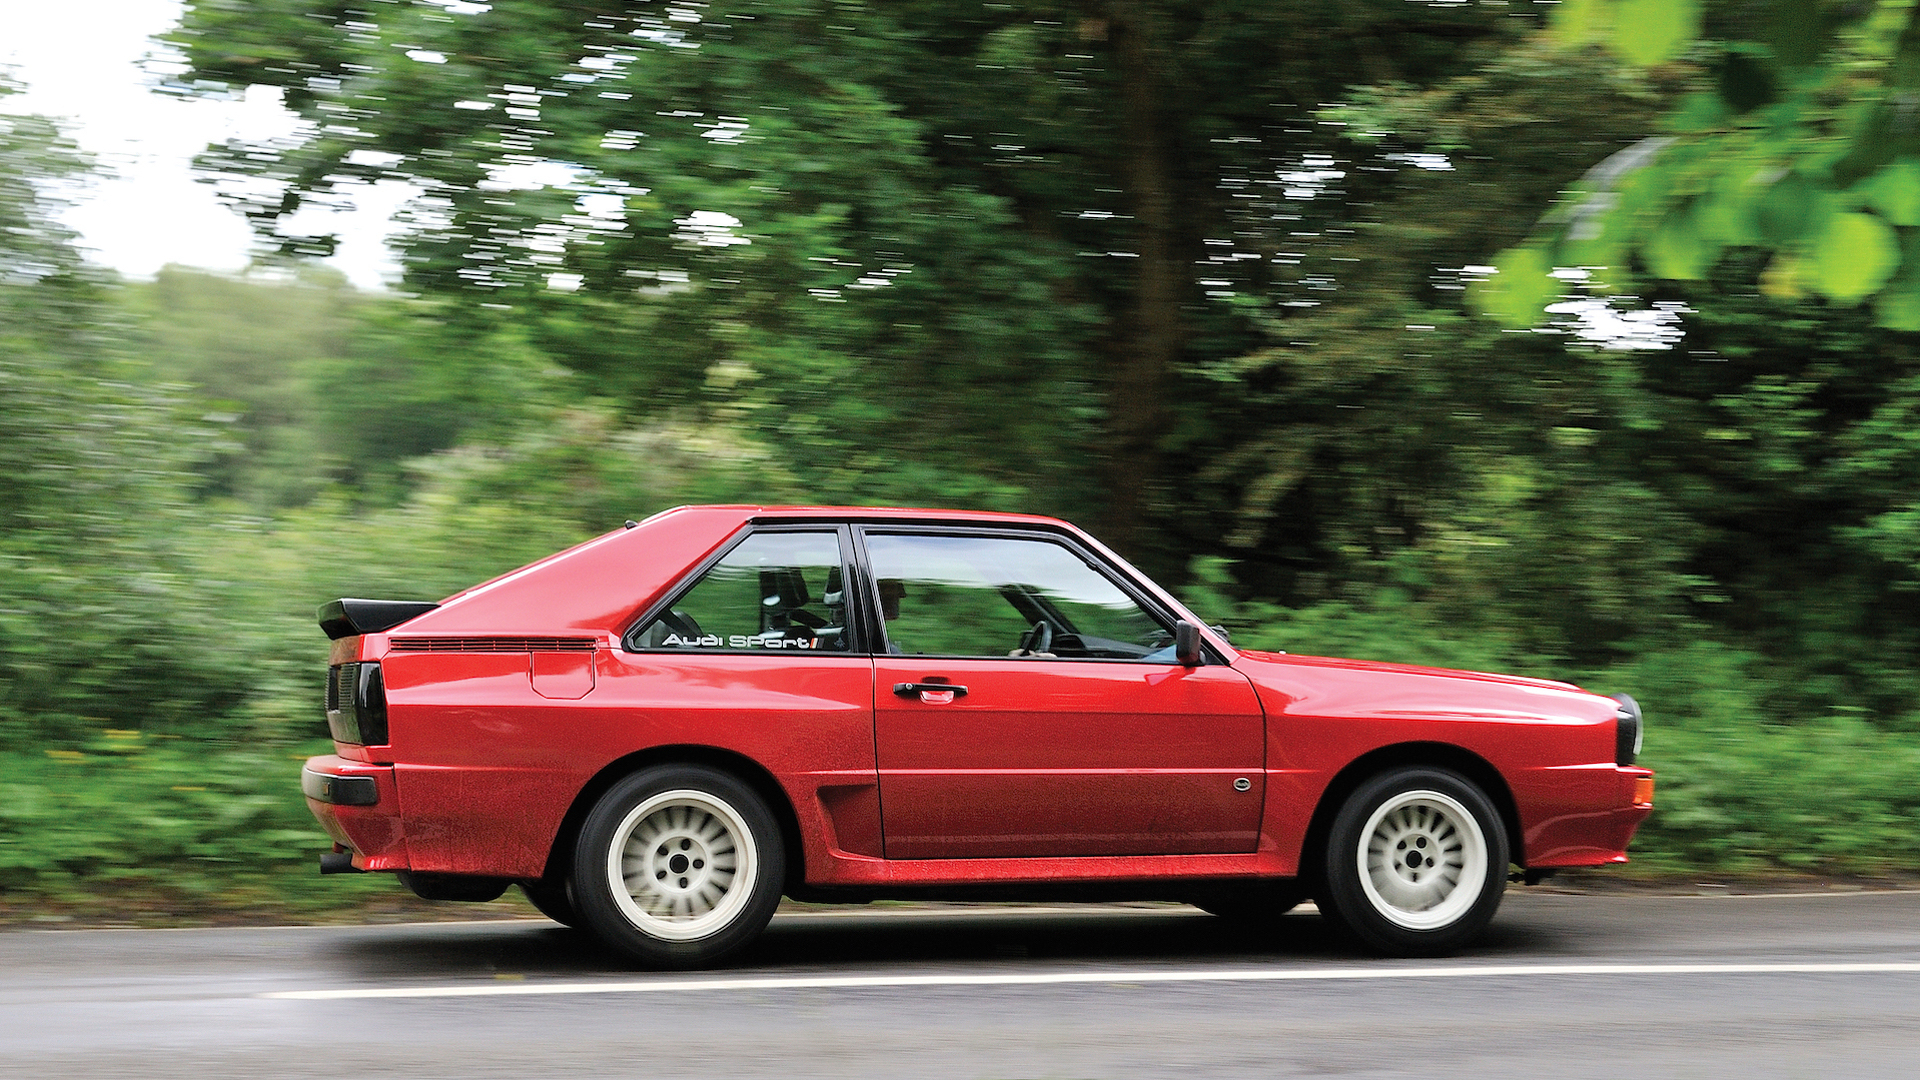 1986 Audi Sport Quattro Auctions For 536k In London